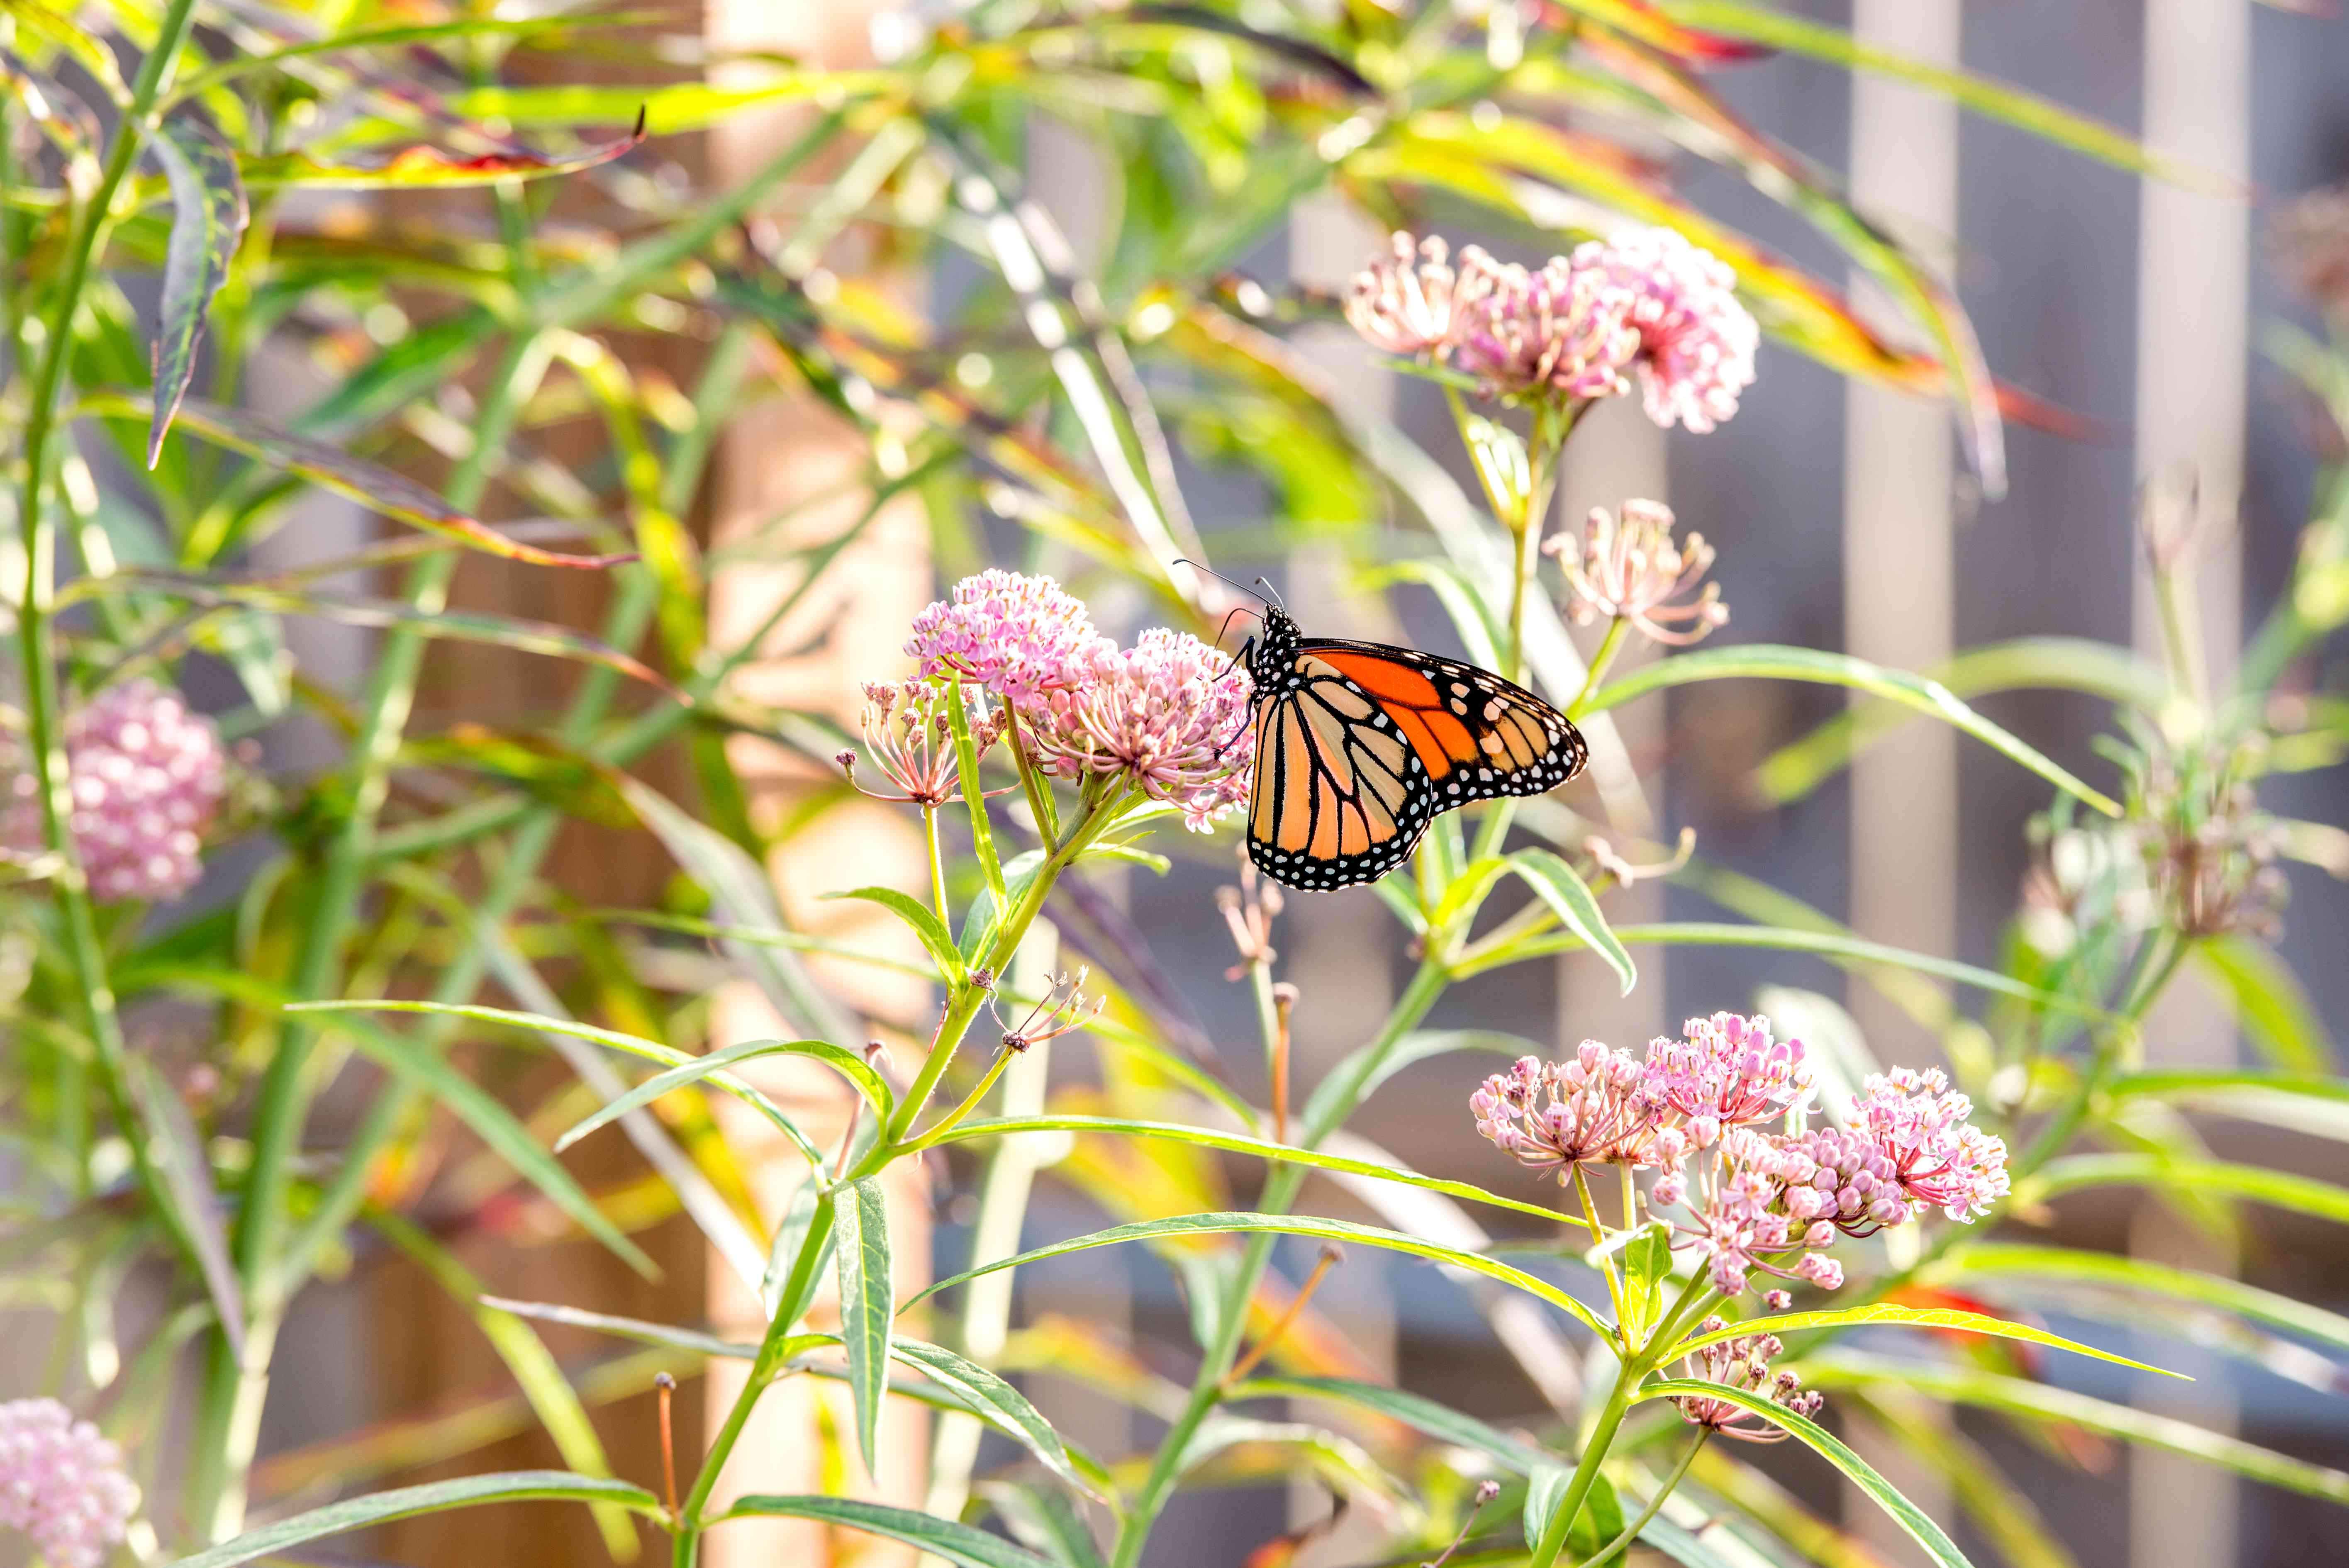 Swamp milkweed plant with small pink flowers clustered on edge of stems with orange butterfly in middle